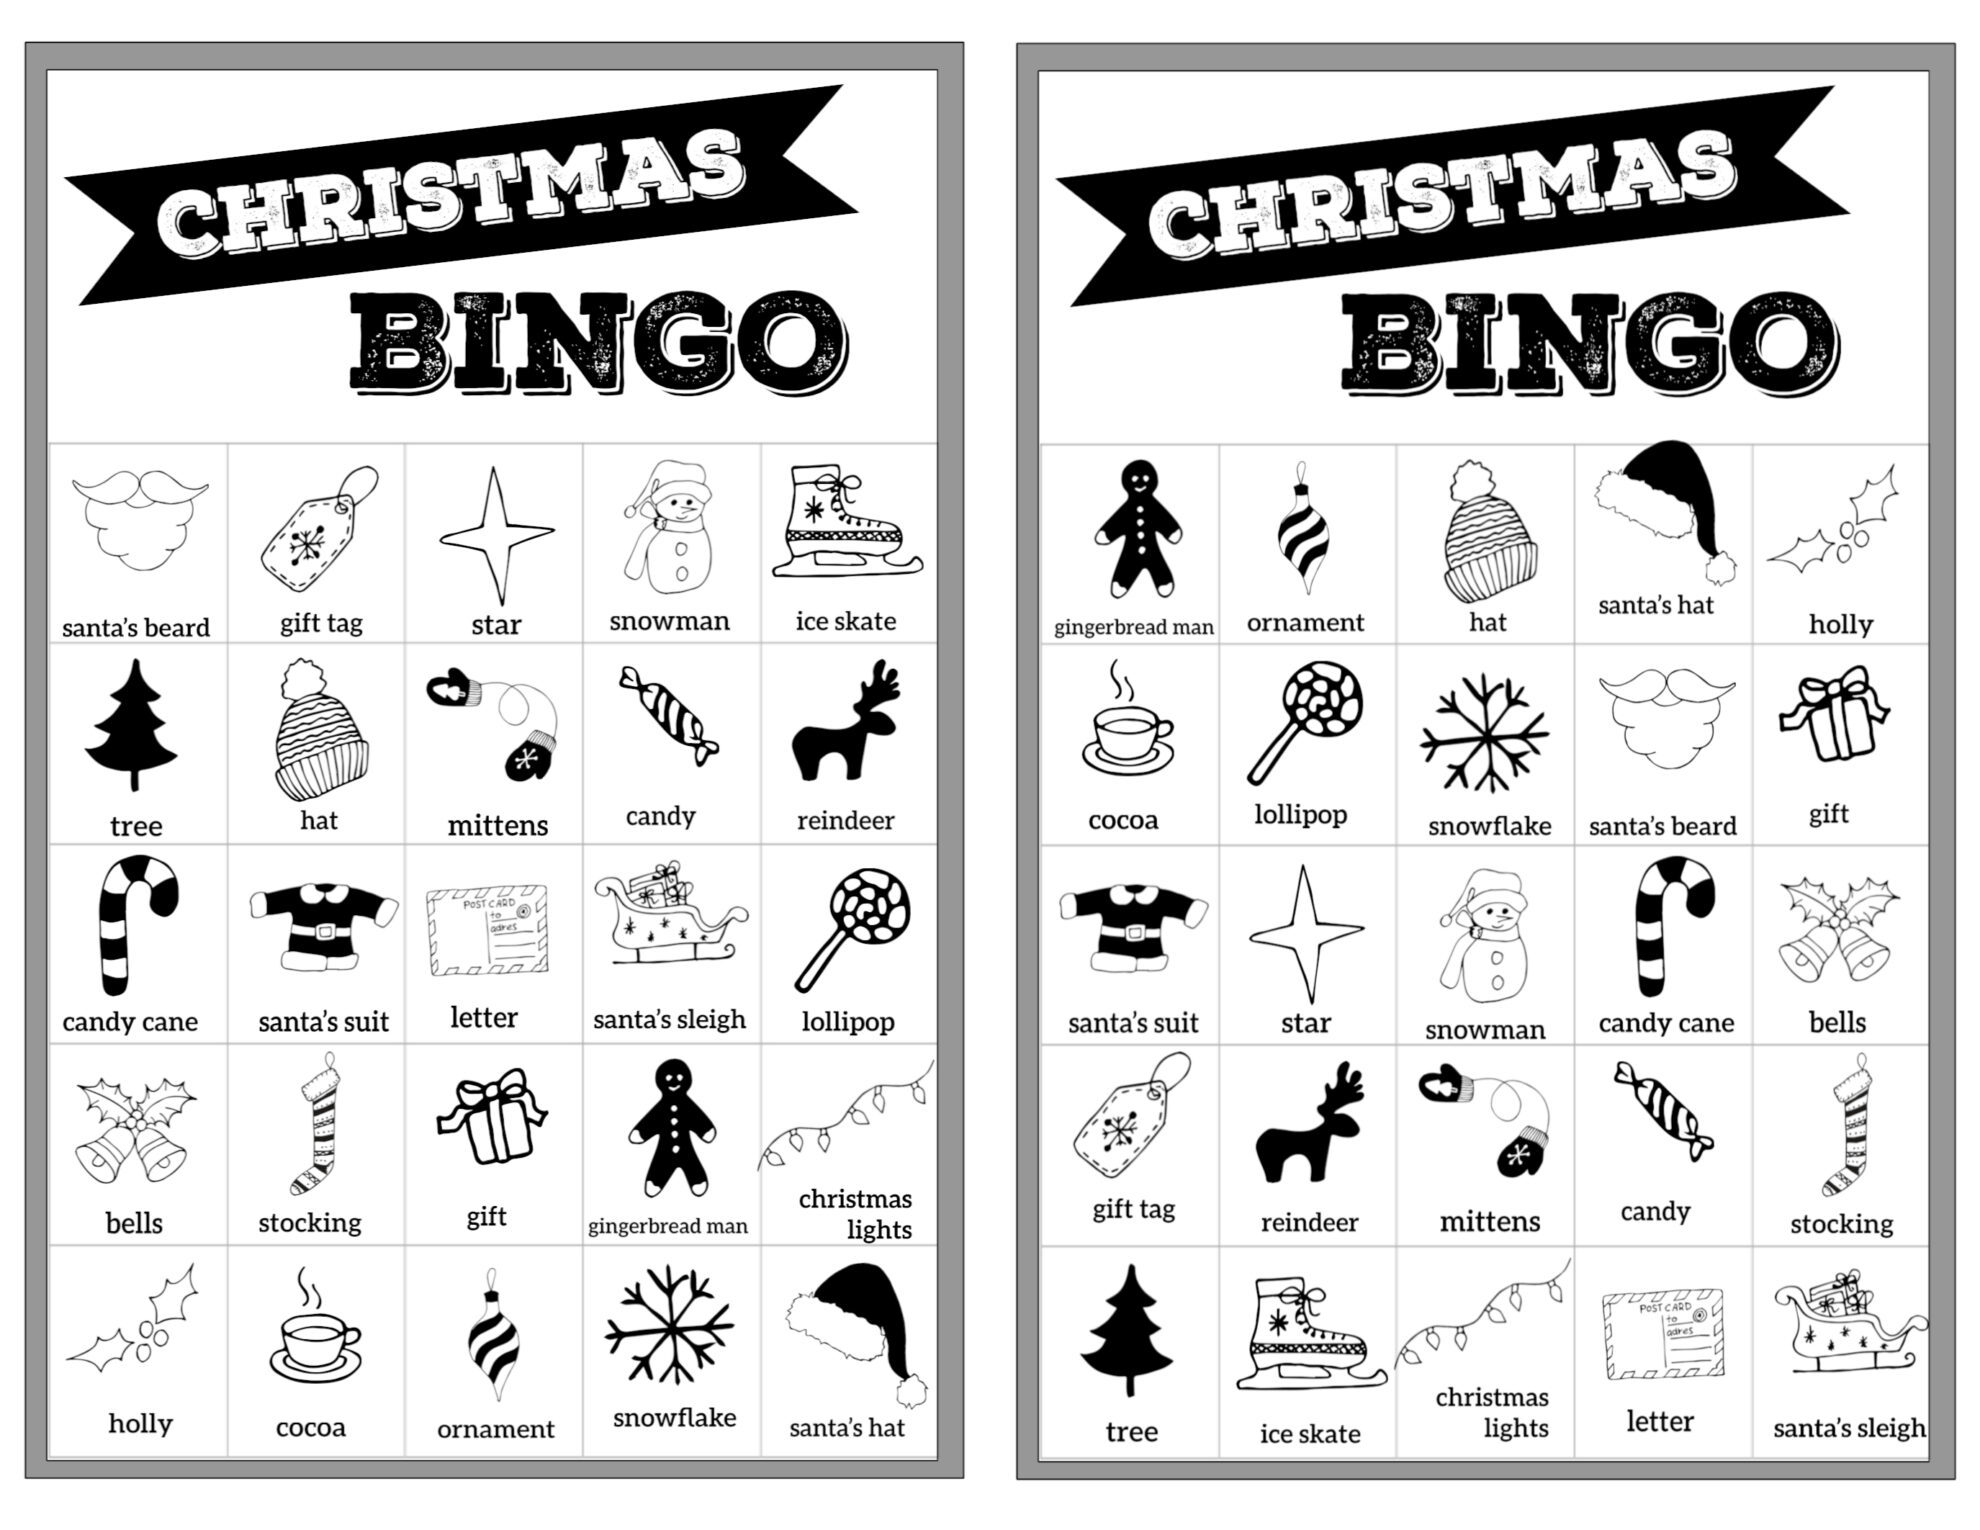 Free Christmas Bingo Printable Cards - Paper Trail Design